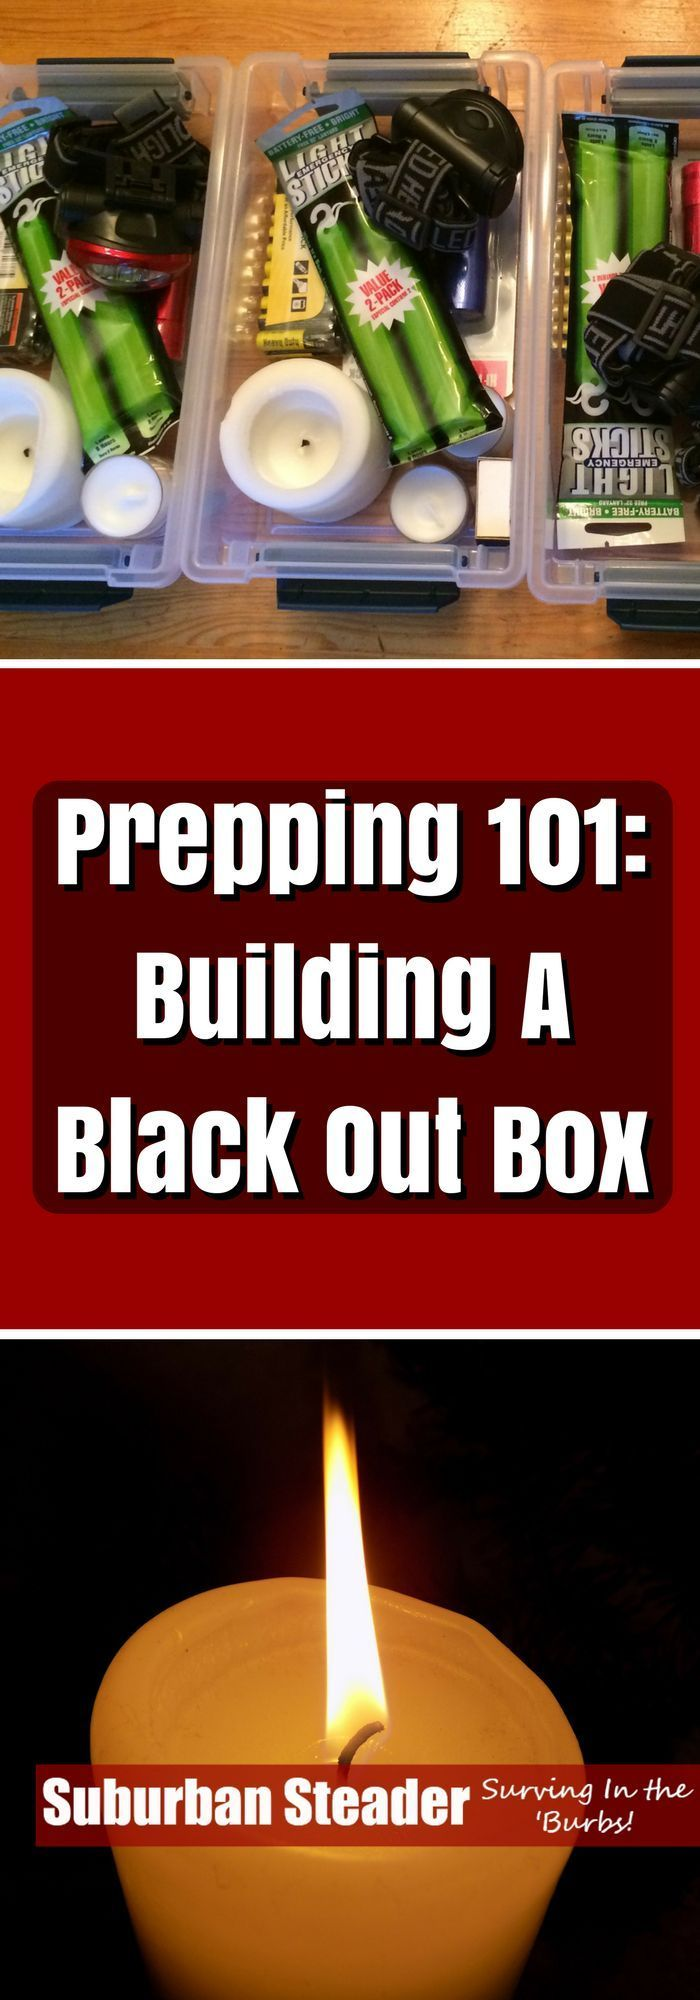 Learn a how to build a basic prepping kit - a Black Out Box - in this informative article. We even provide a list of equipment to get you started!